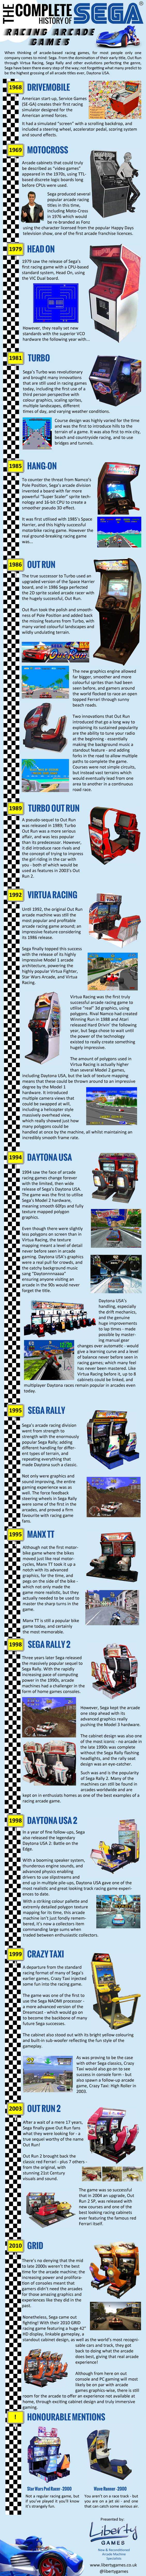 The Complete History of SEGA Racing Arcade Machines